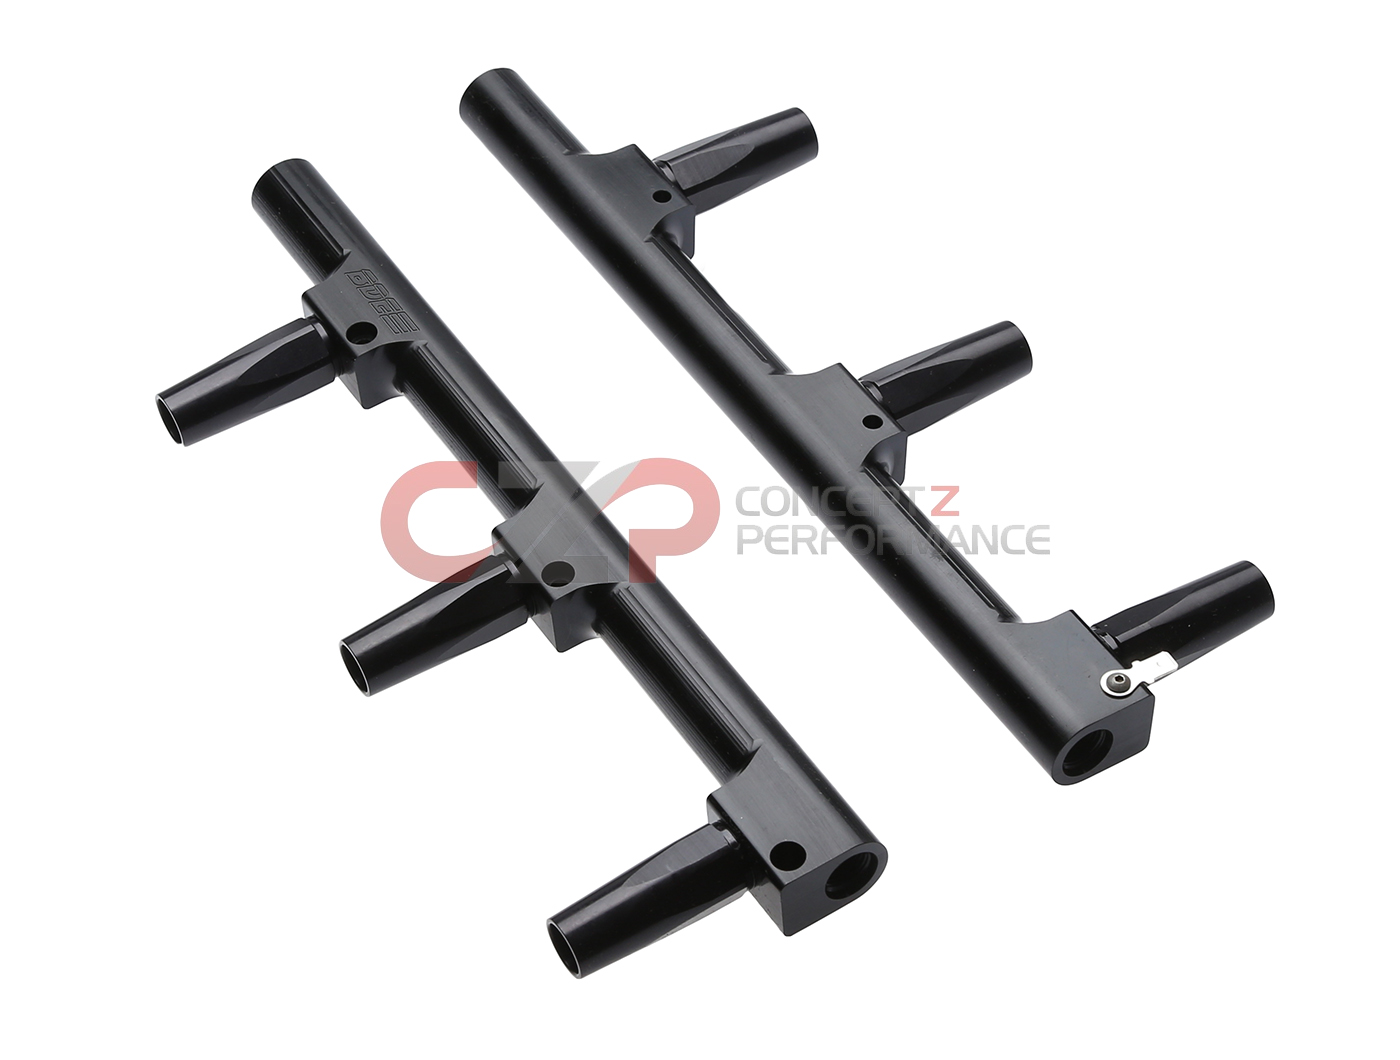 Bde Top Feed Fuel Rail Kit W Optional Injectors Nissan 300zx Z32 1995 Filter Tffr C Stock Boltonearly Boltonlate Modupper Upp Modtube Tube